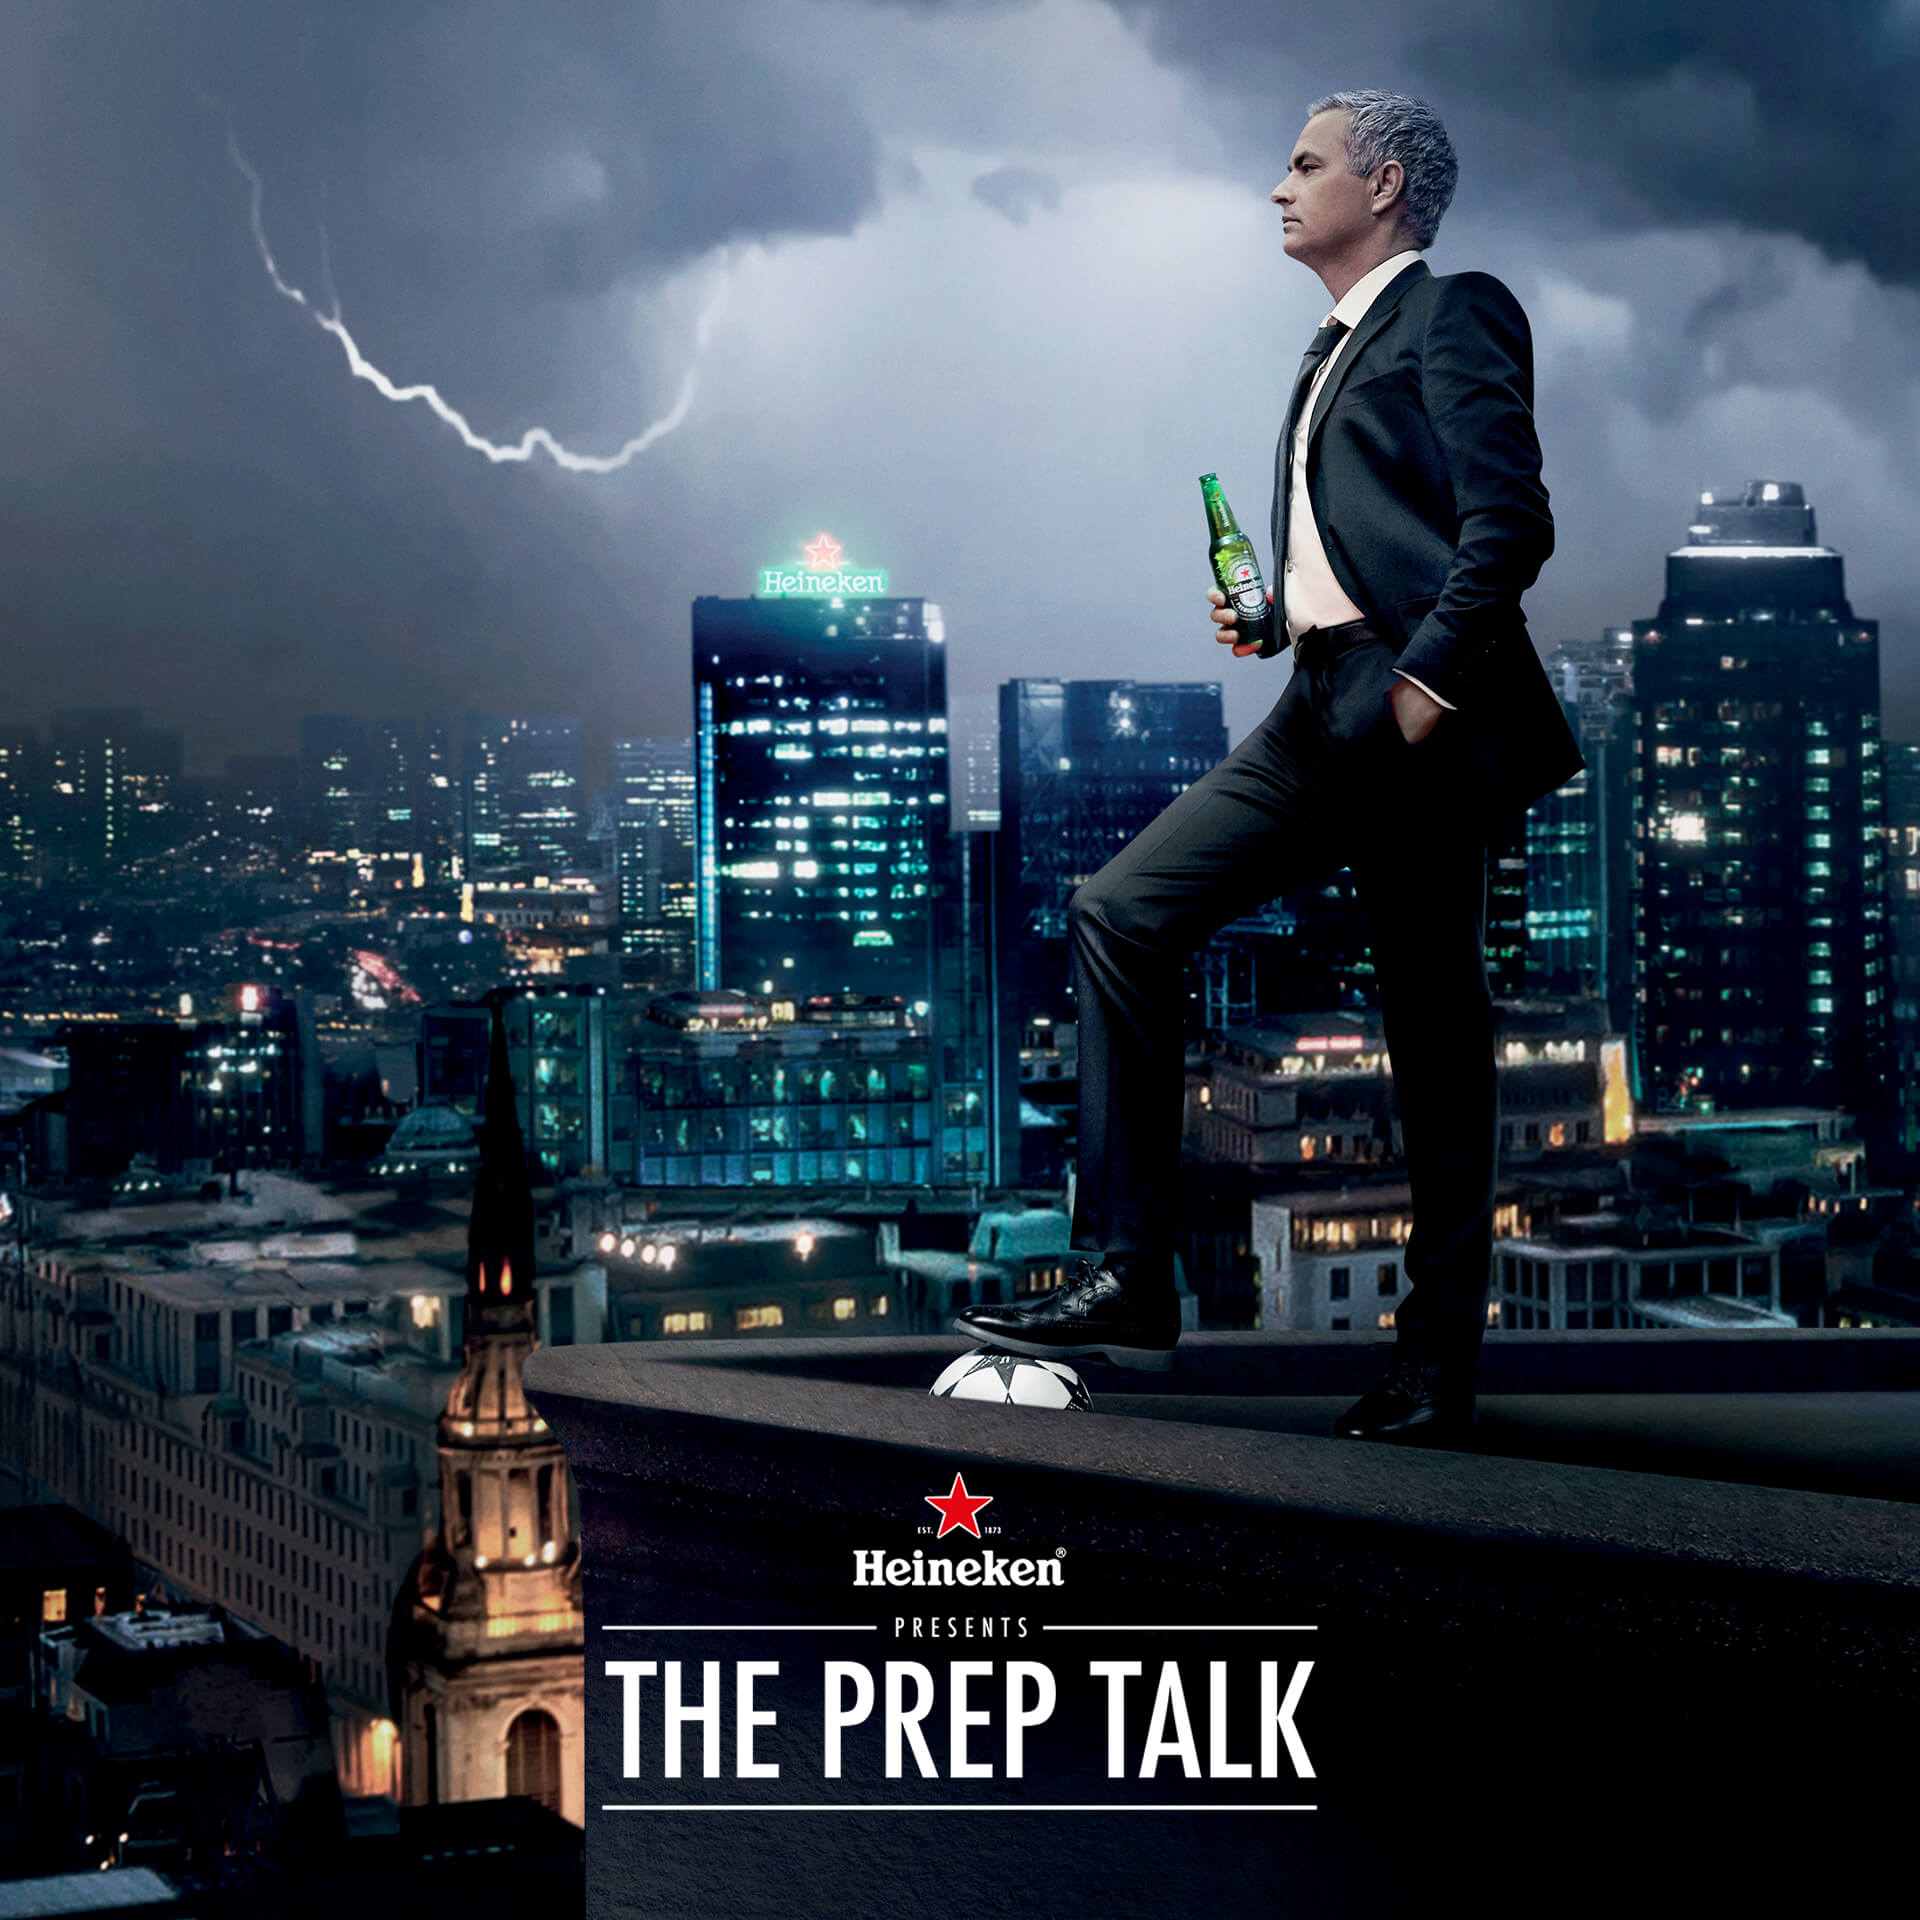 Heineken® Launches New UEFA Champions League Campaign,  Starring Jose Mourinho